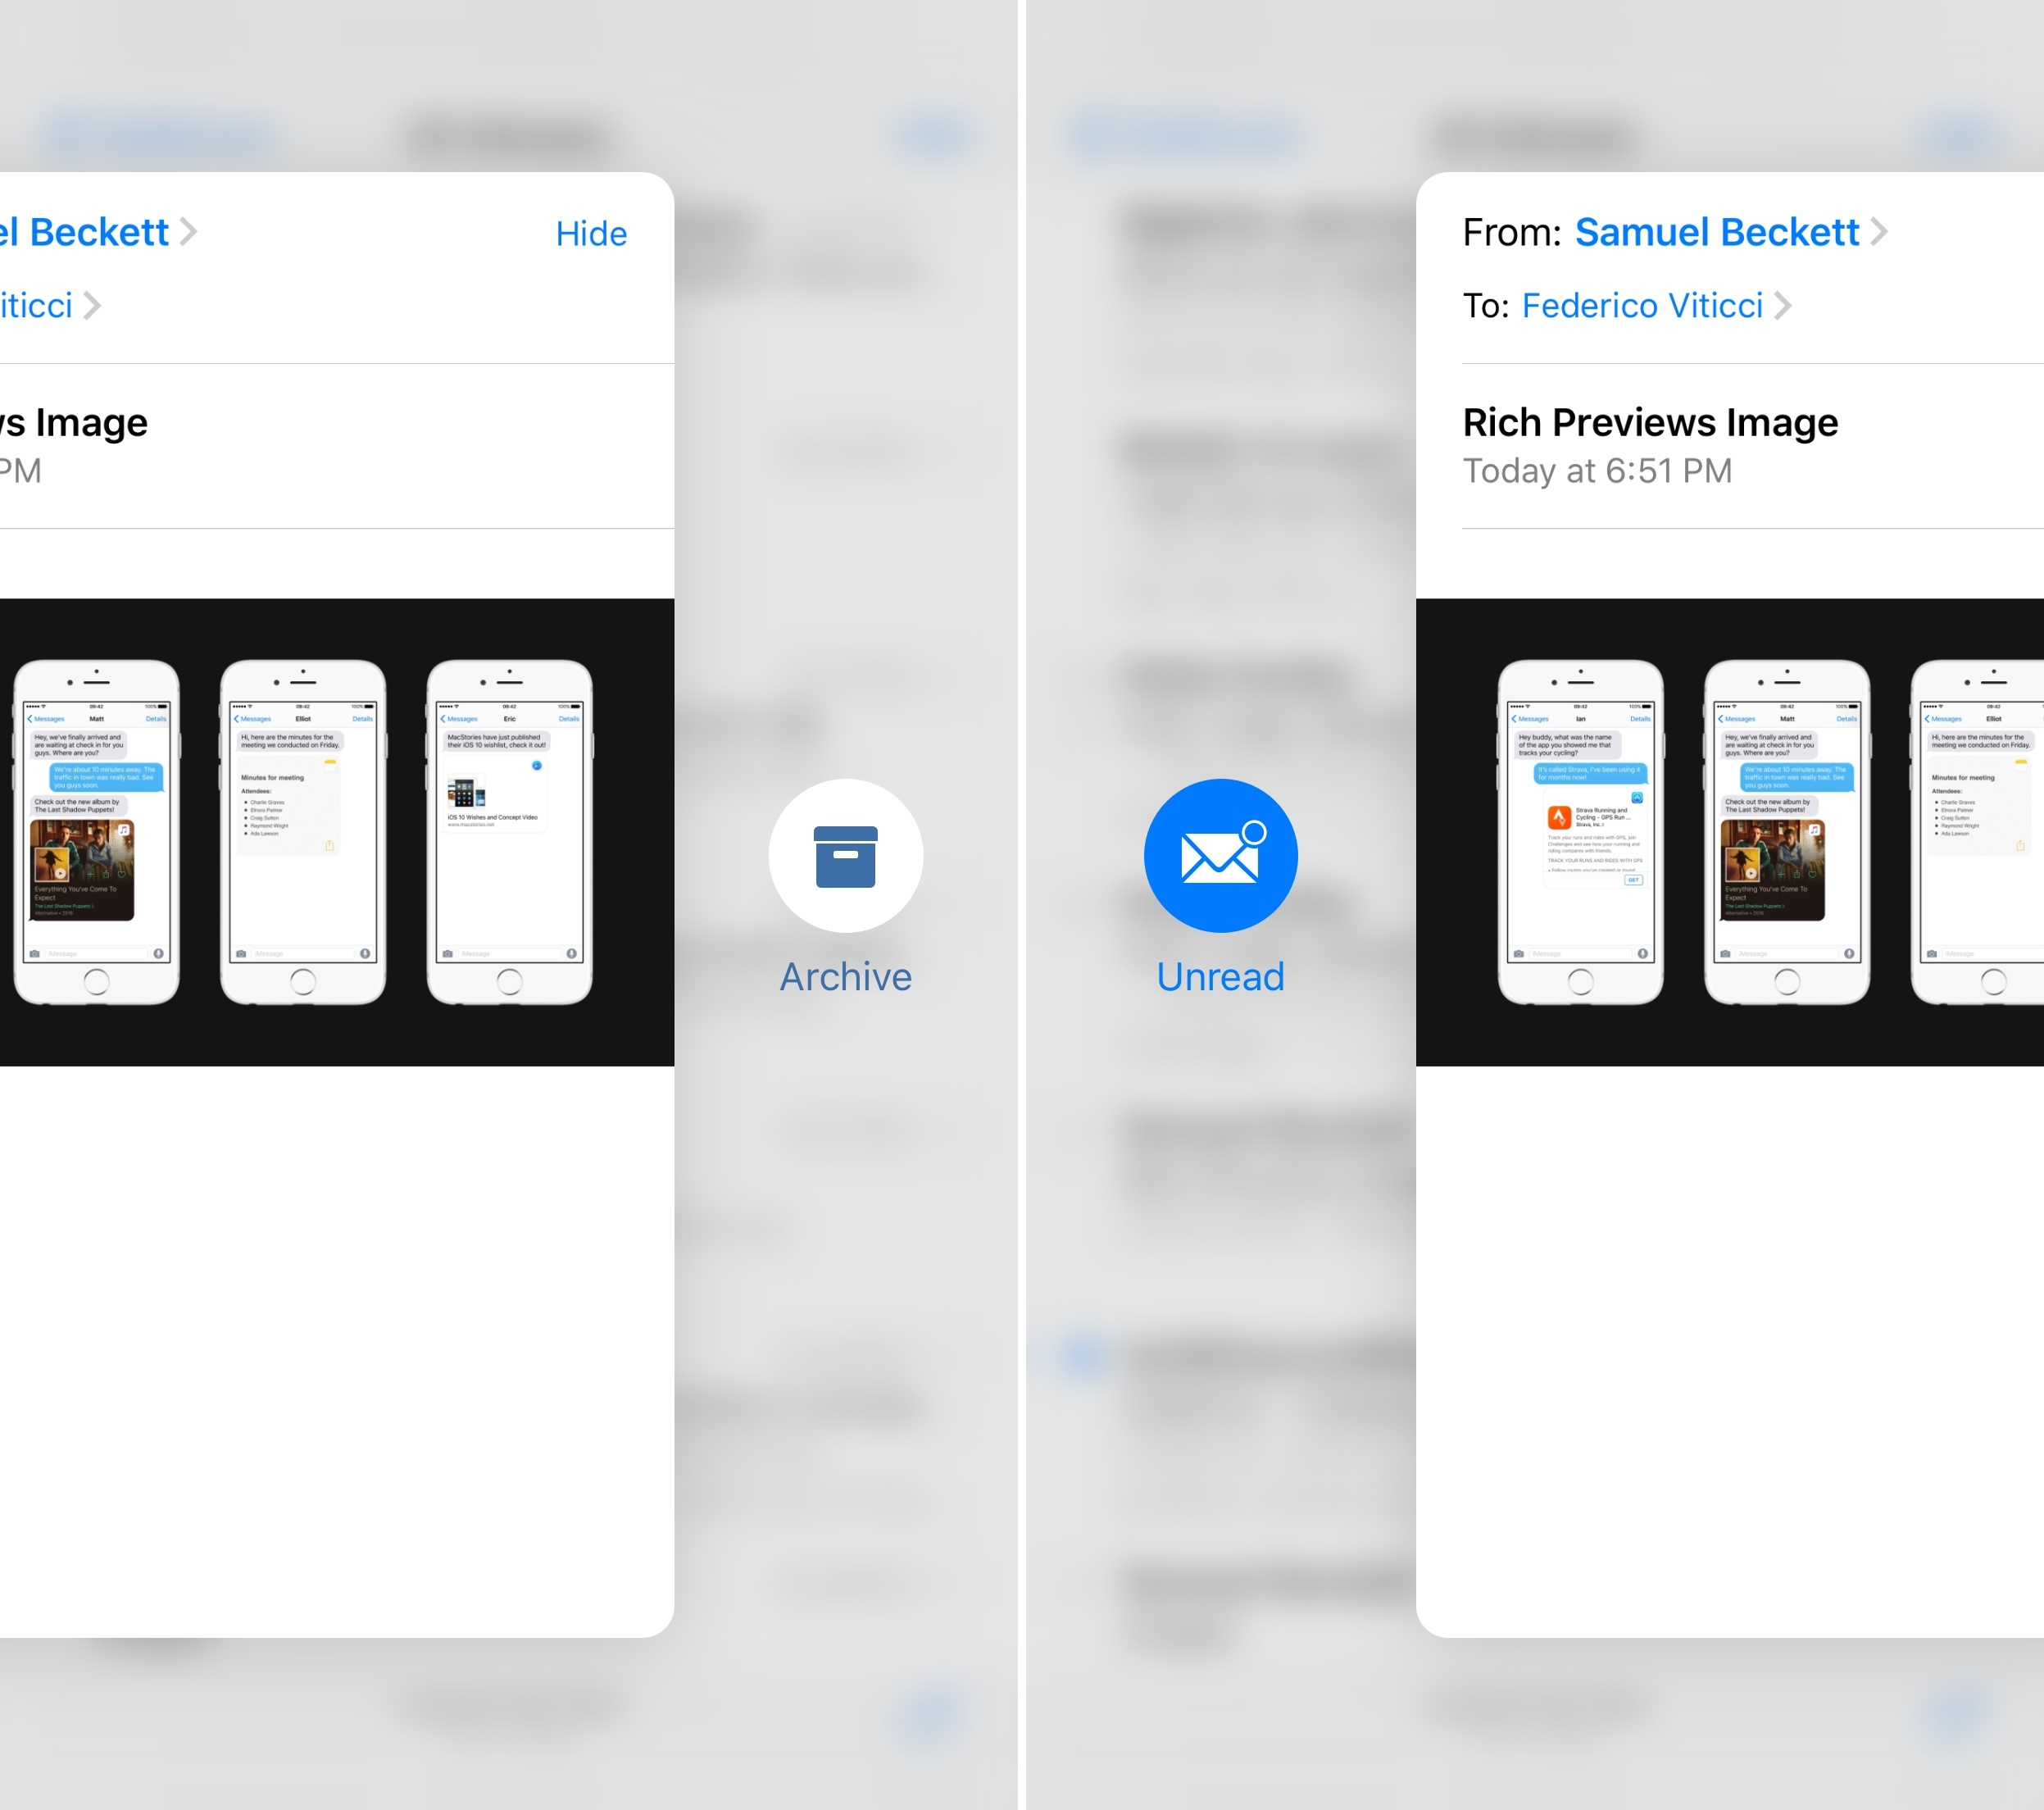 Horizontal peek actions in Mail for iOS 9.